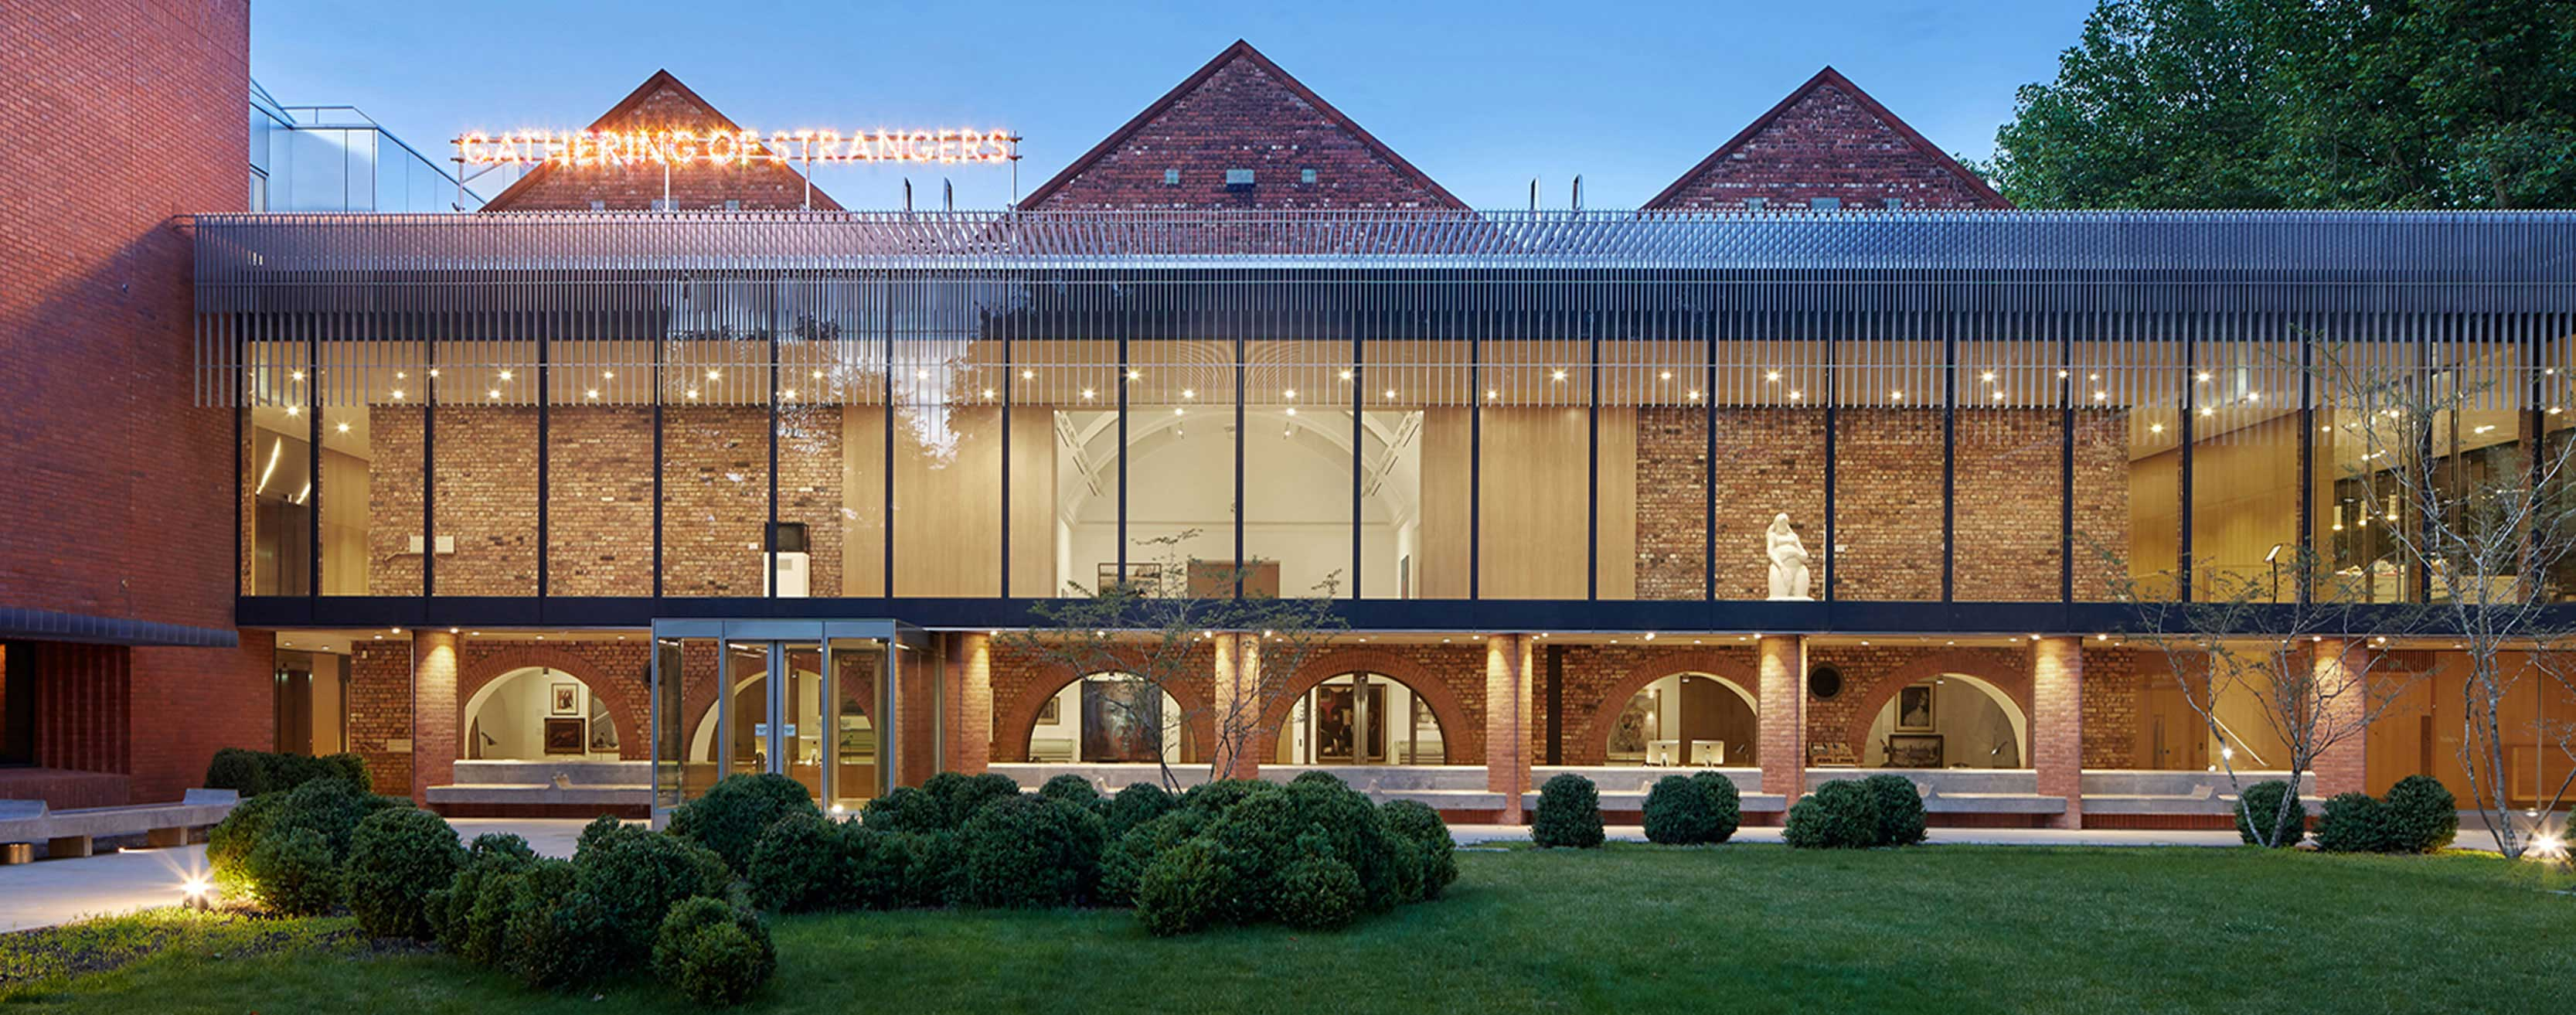 Image result for whitworth art gallery manchester